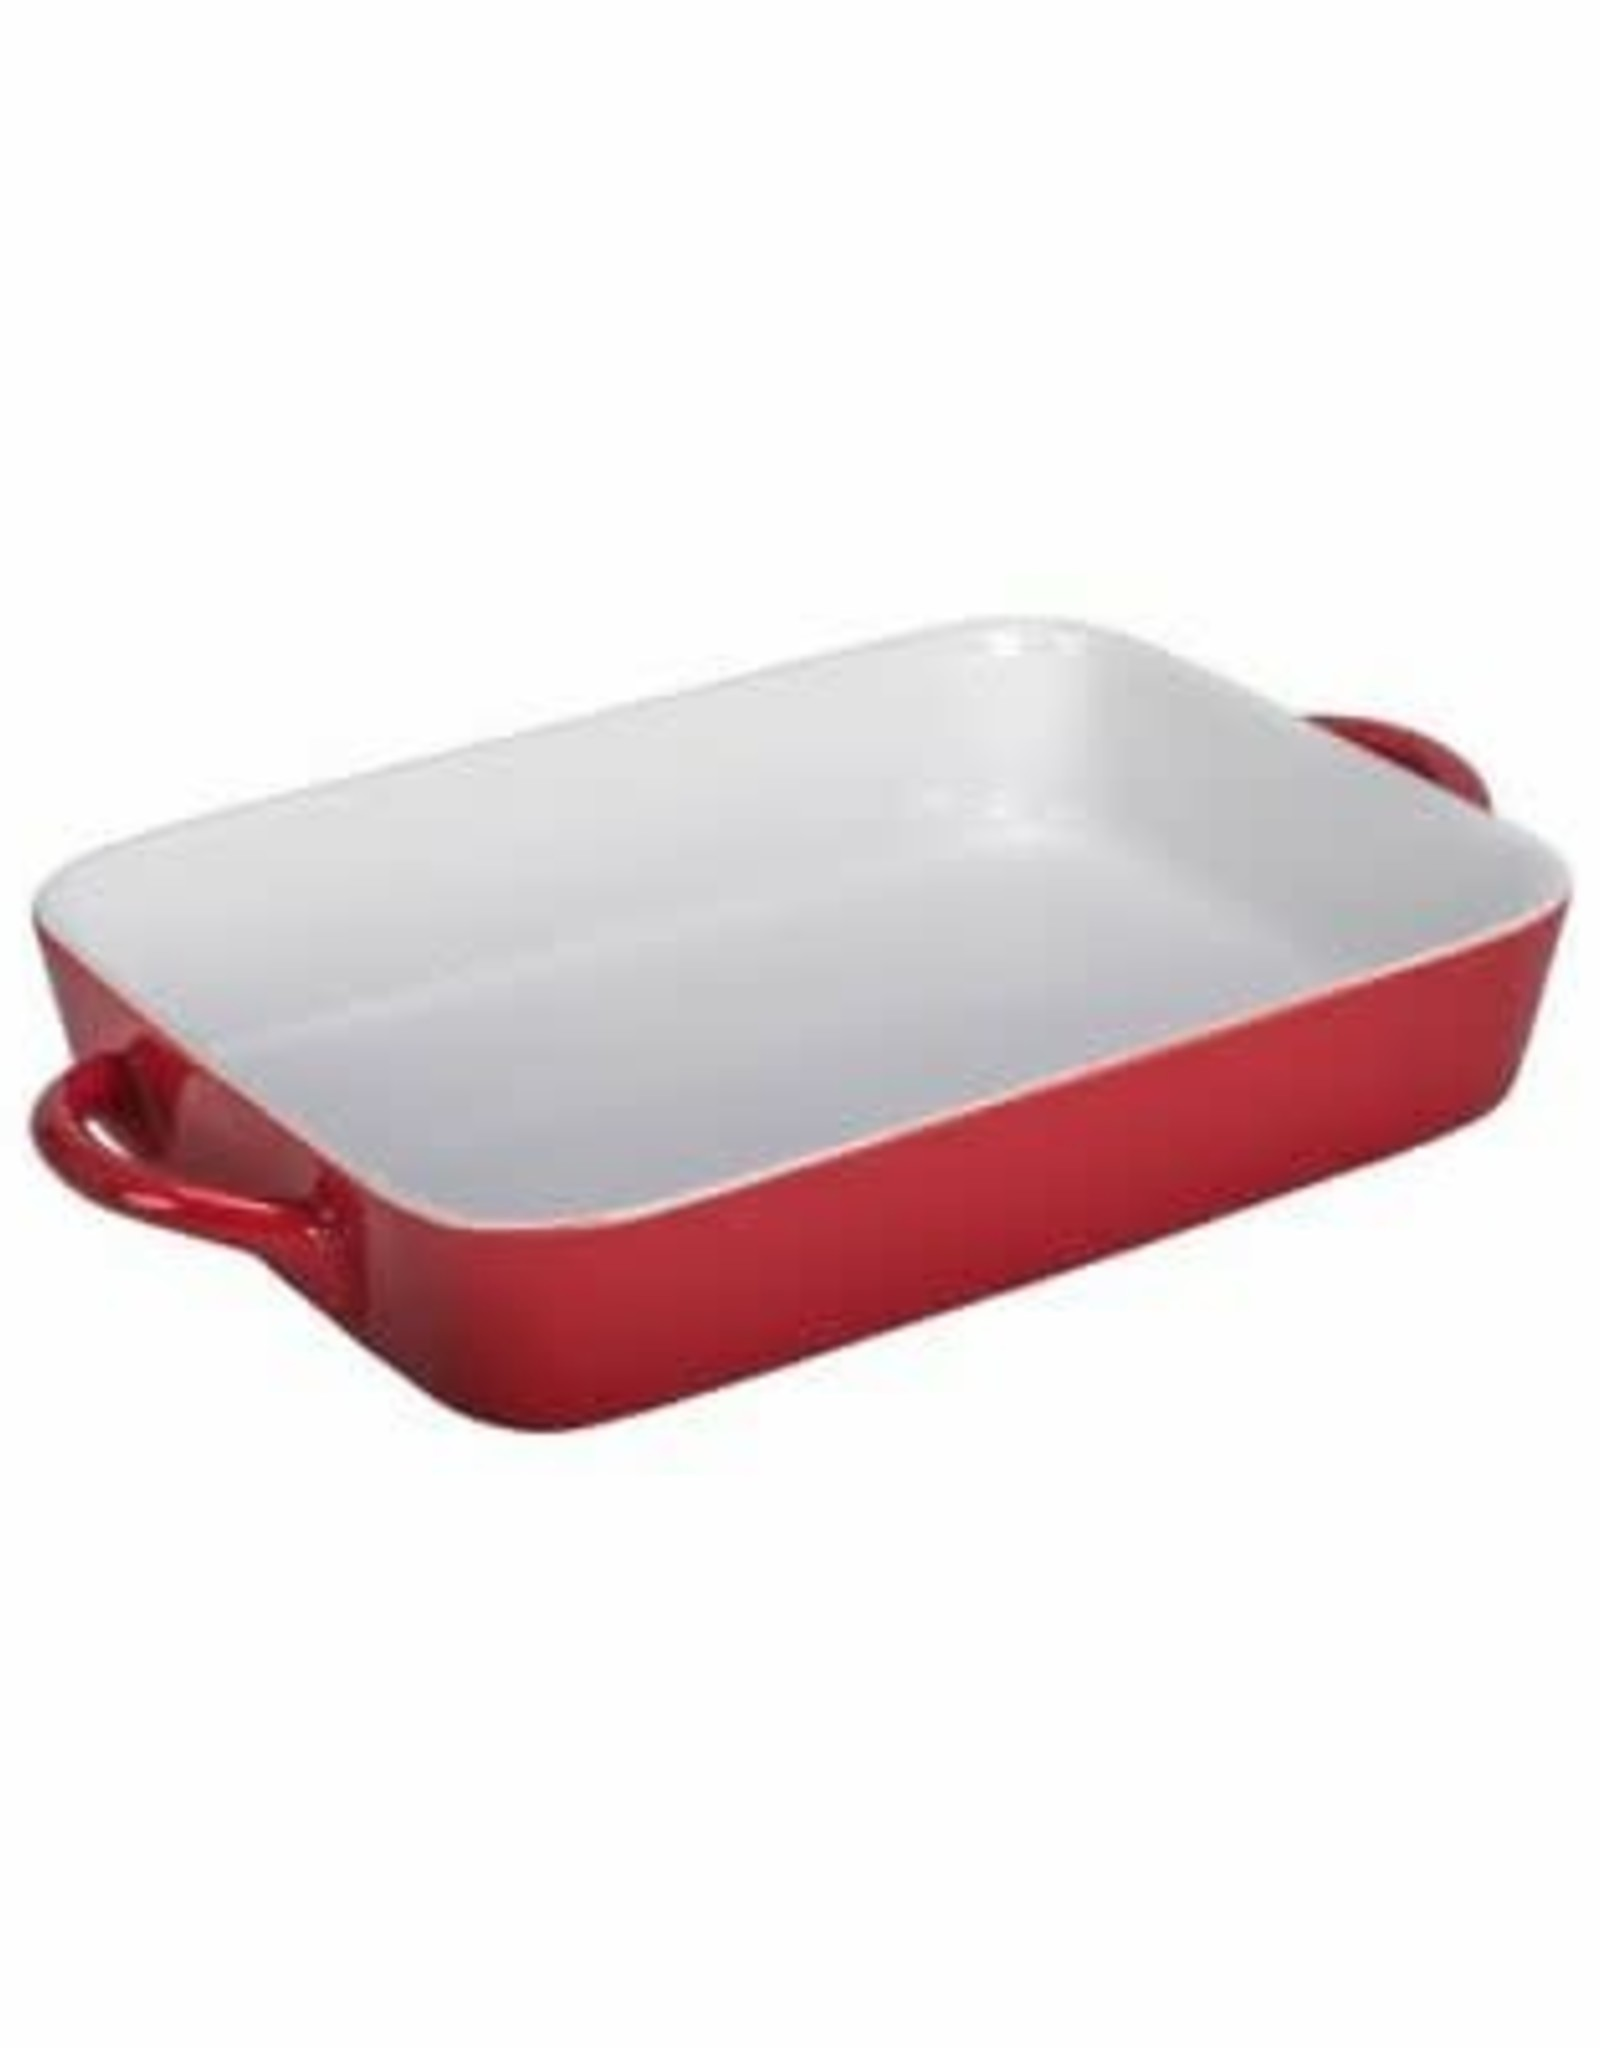 BAKER WITH HANDLES 17 INCH RECTANGLE RED